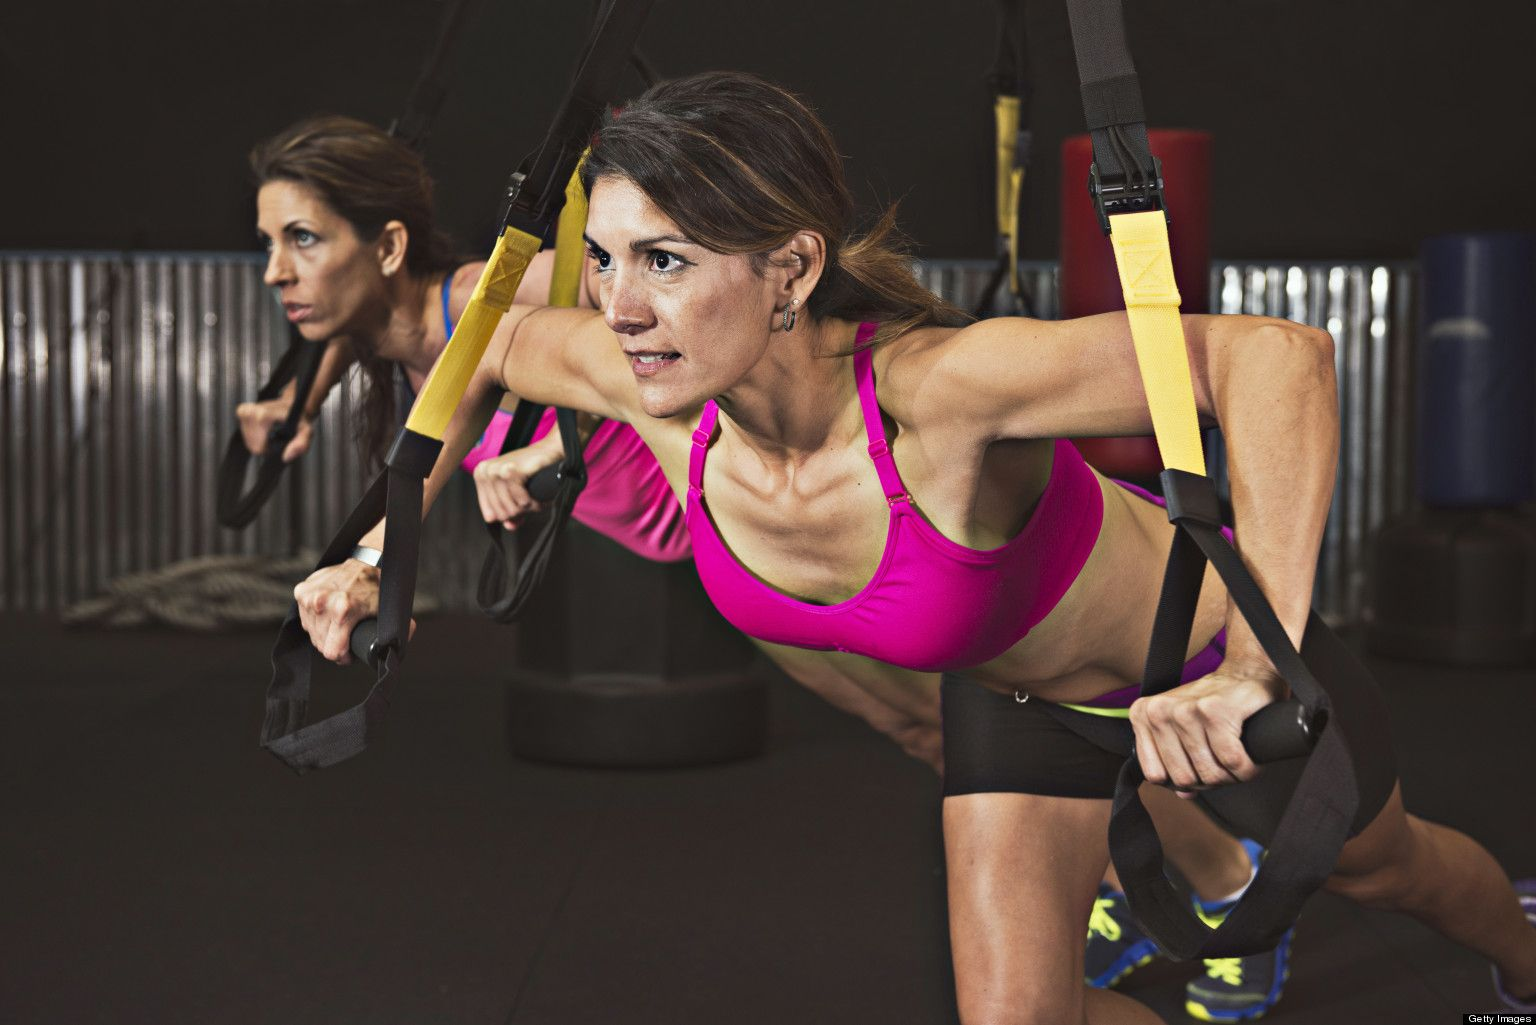 Does crossfit deserve the hype 5 reasons the answer might be yes losing weight biggest loser contestants are doing it celebrity trainers do it nascar drivers do it ccuart Image collections